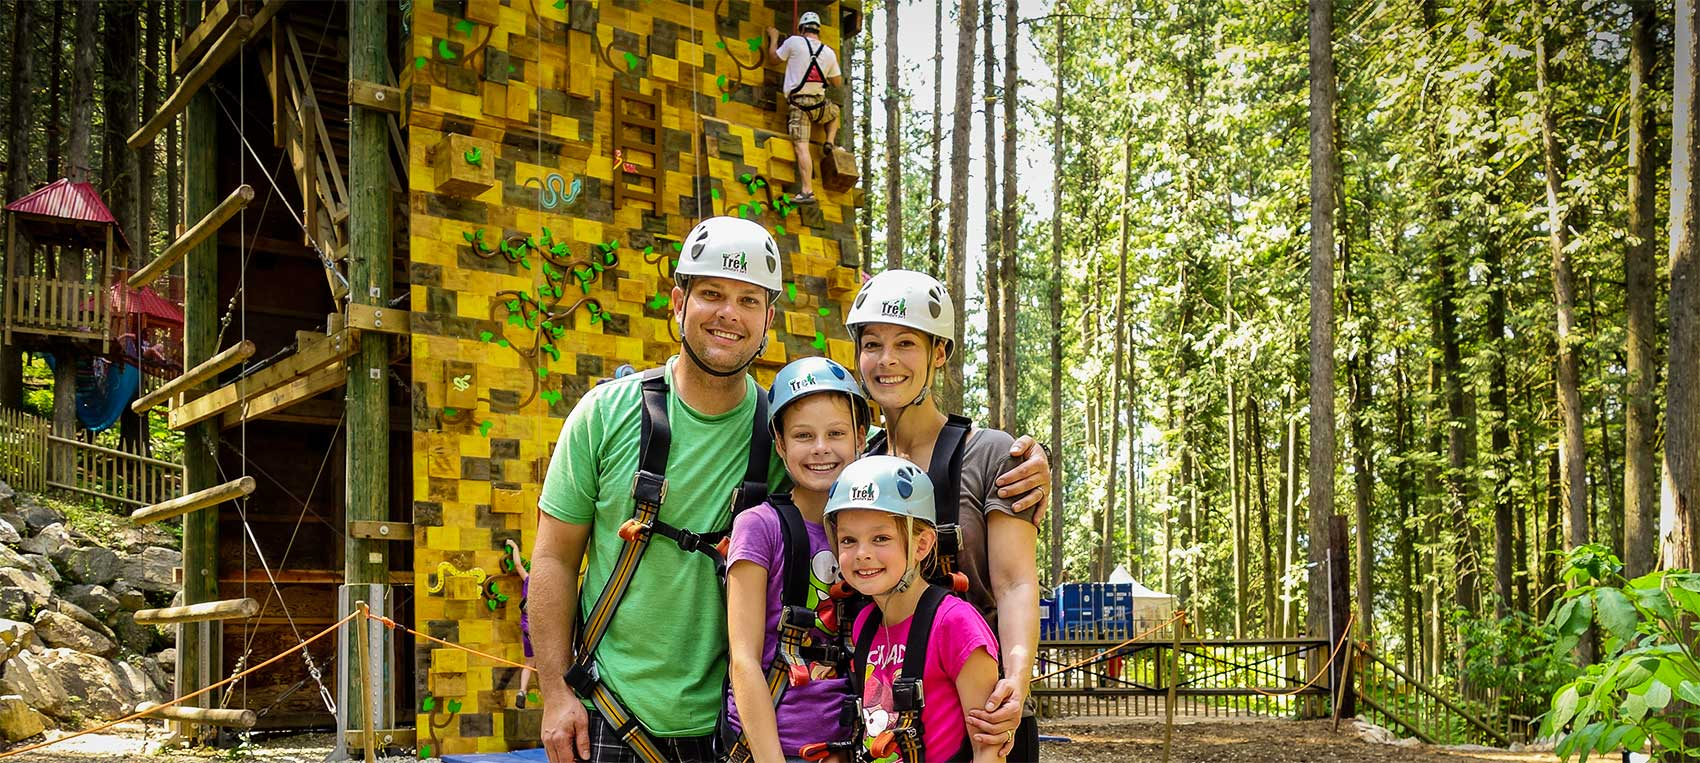 Fun family activities Revelstoke BC